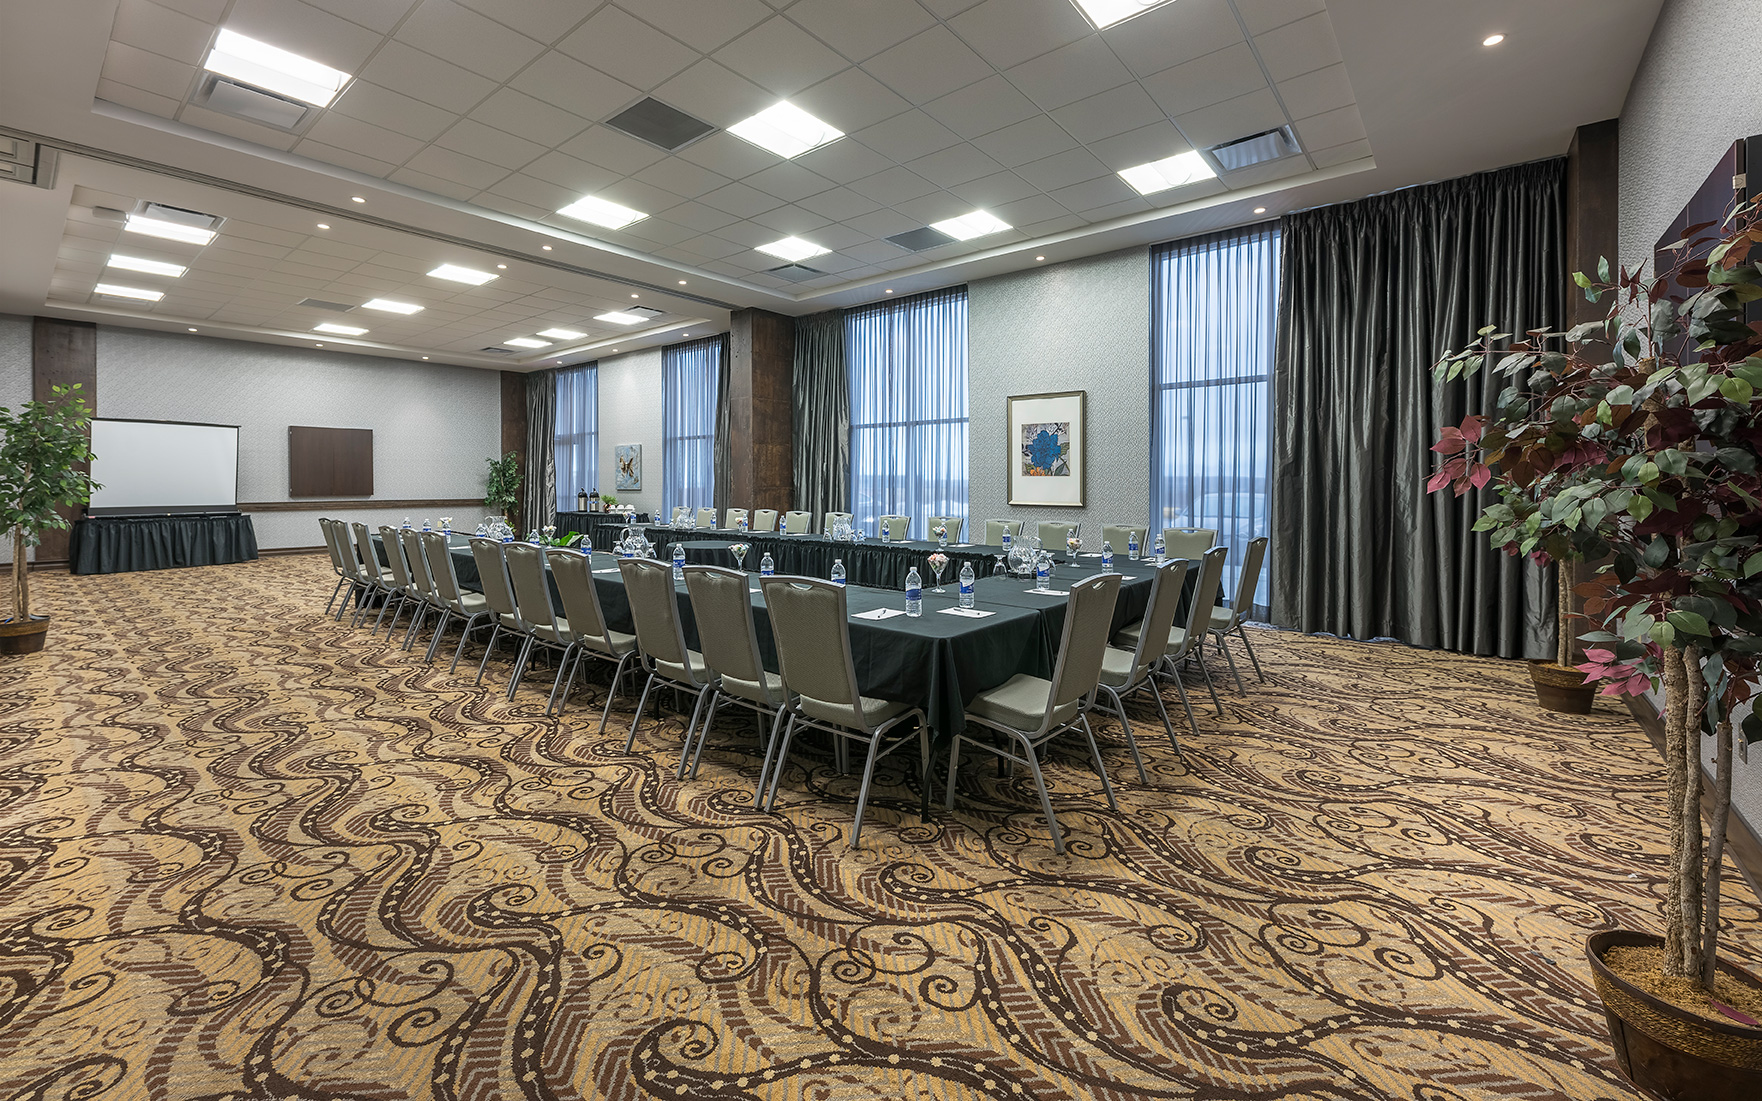 Hampton Inn Sydney Conference Room 2